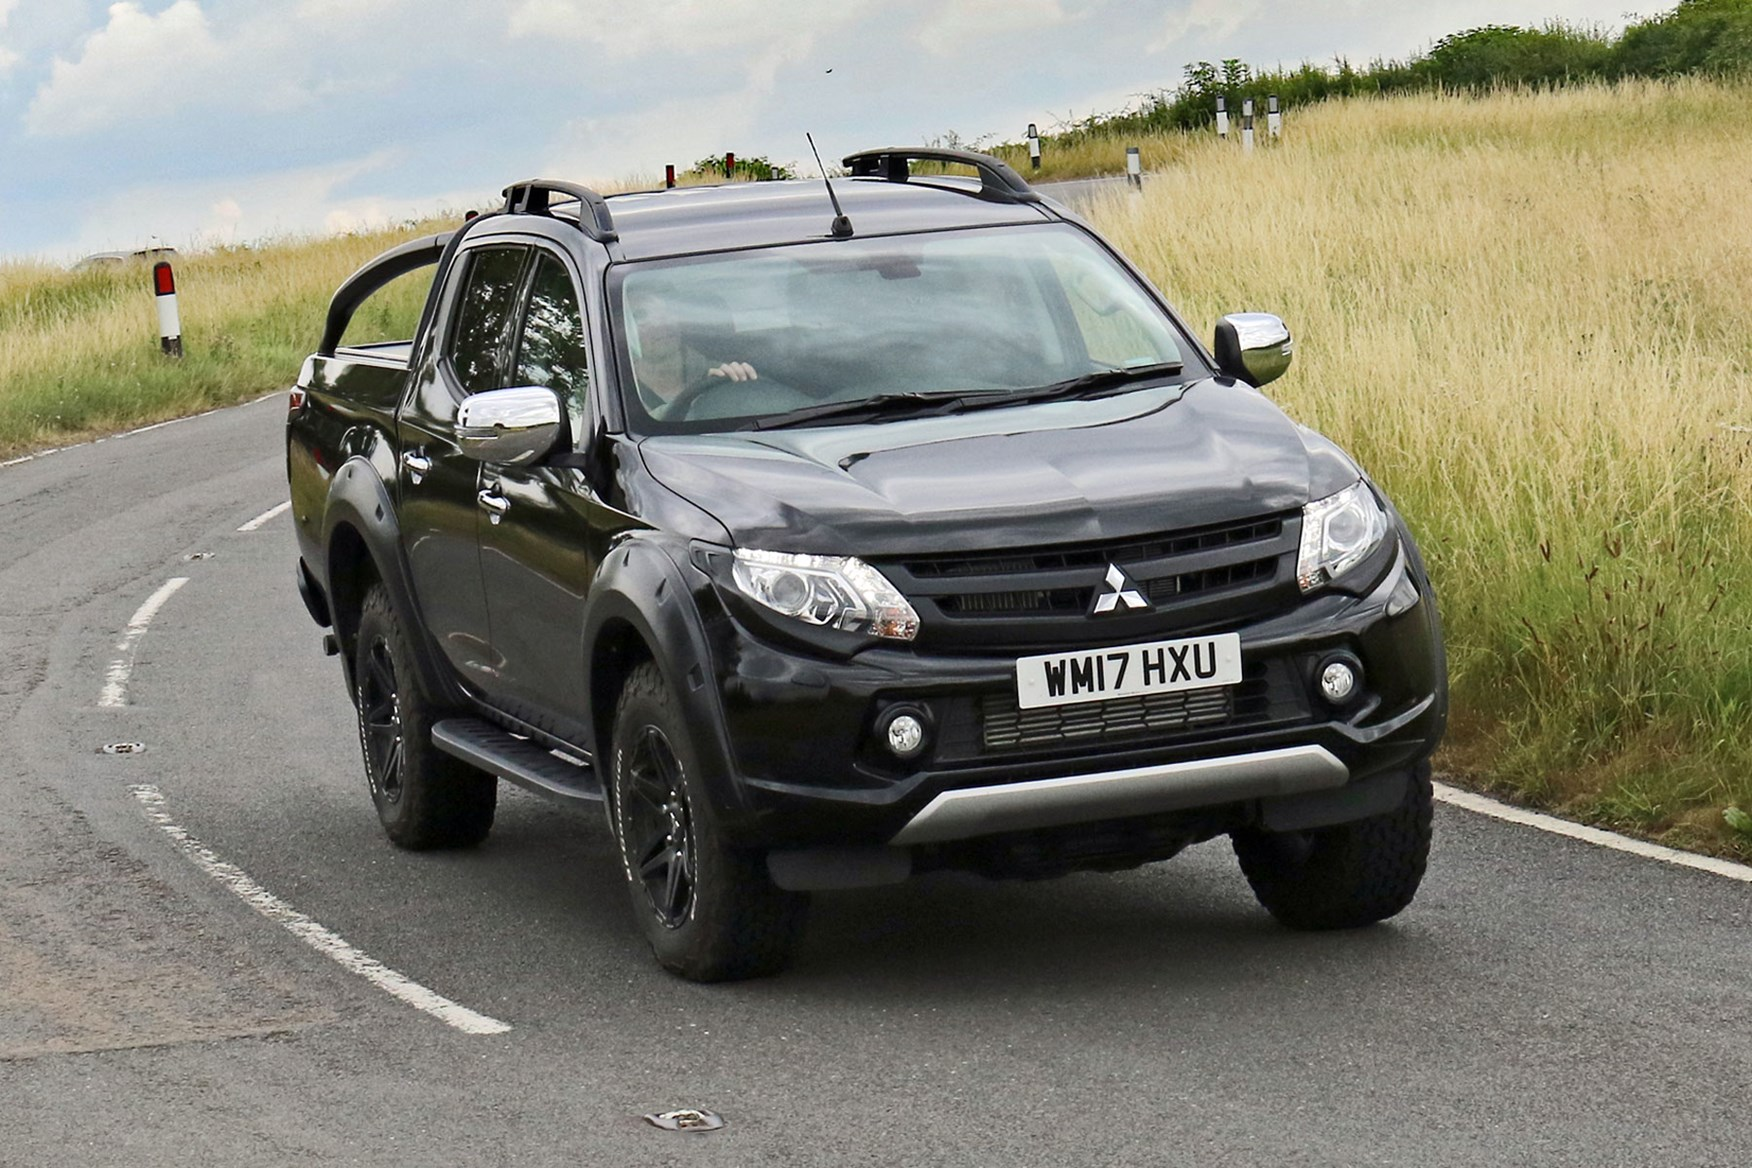 Mitsubishi L200 Barbarian SVP review - front view, driving on country road